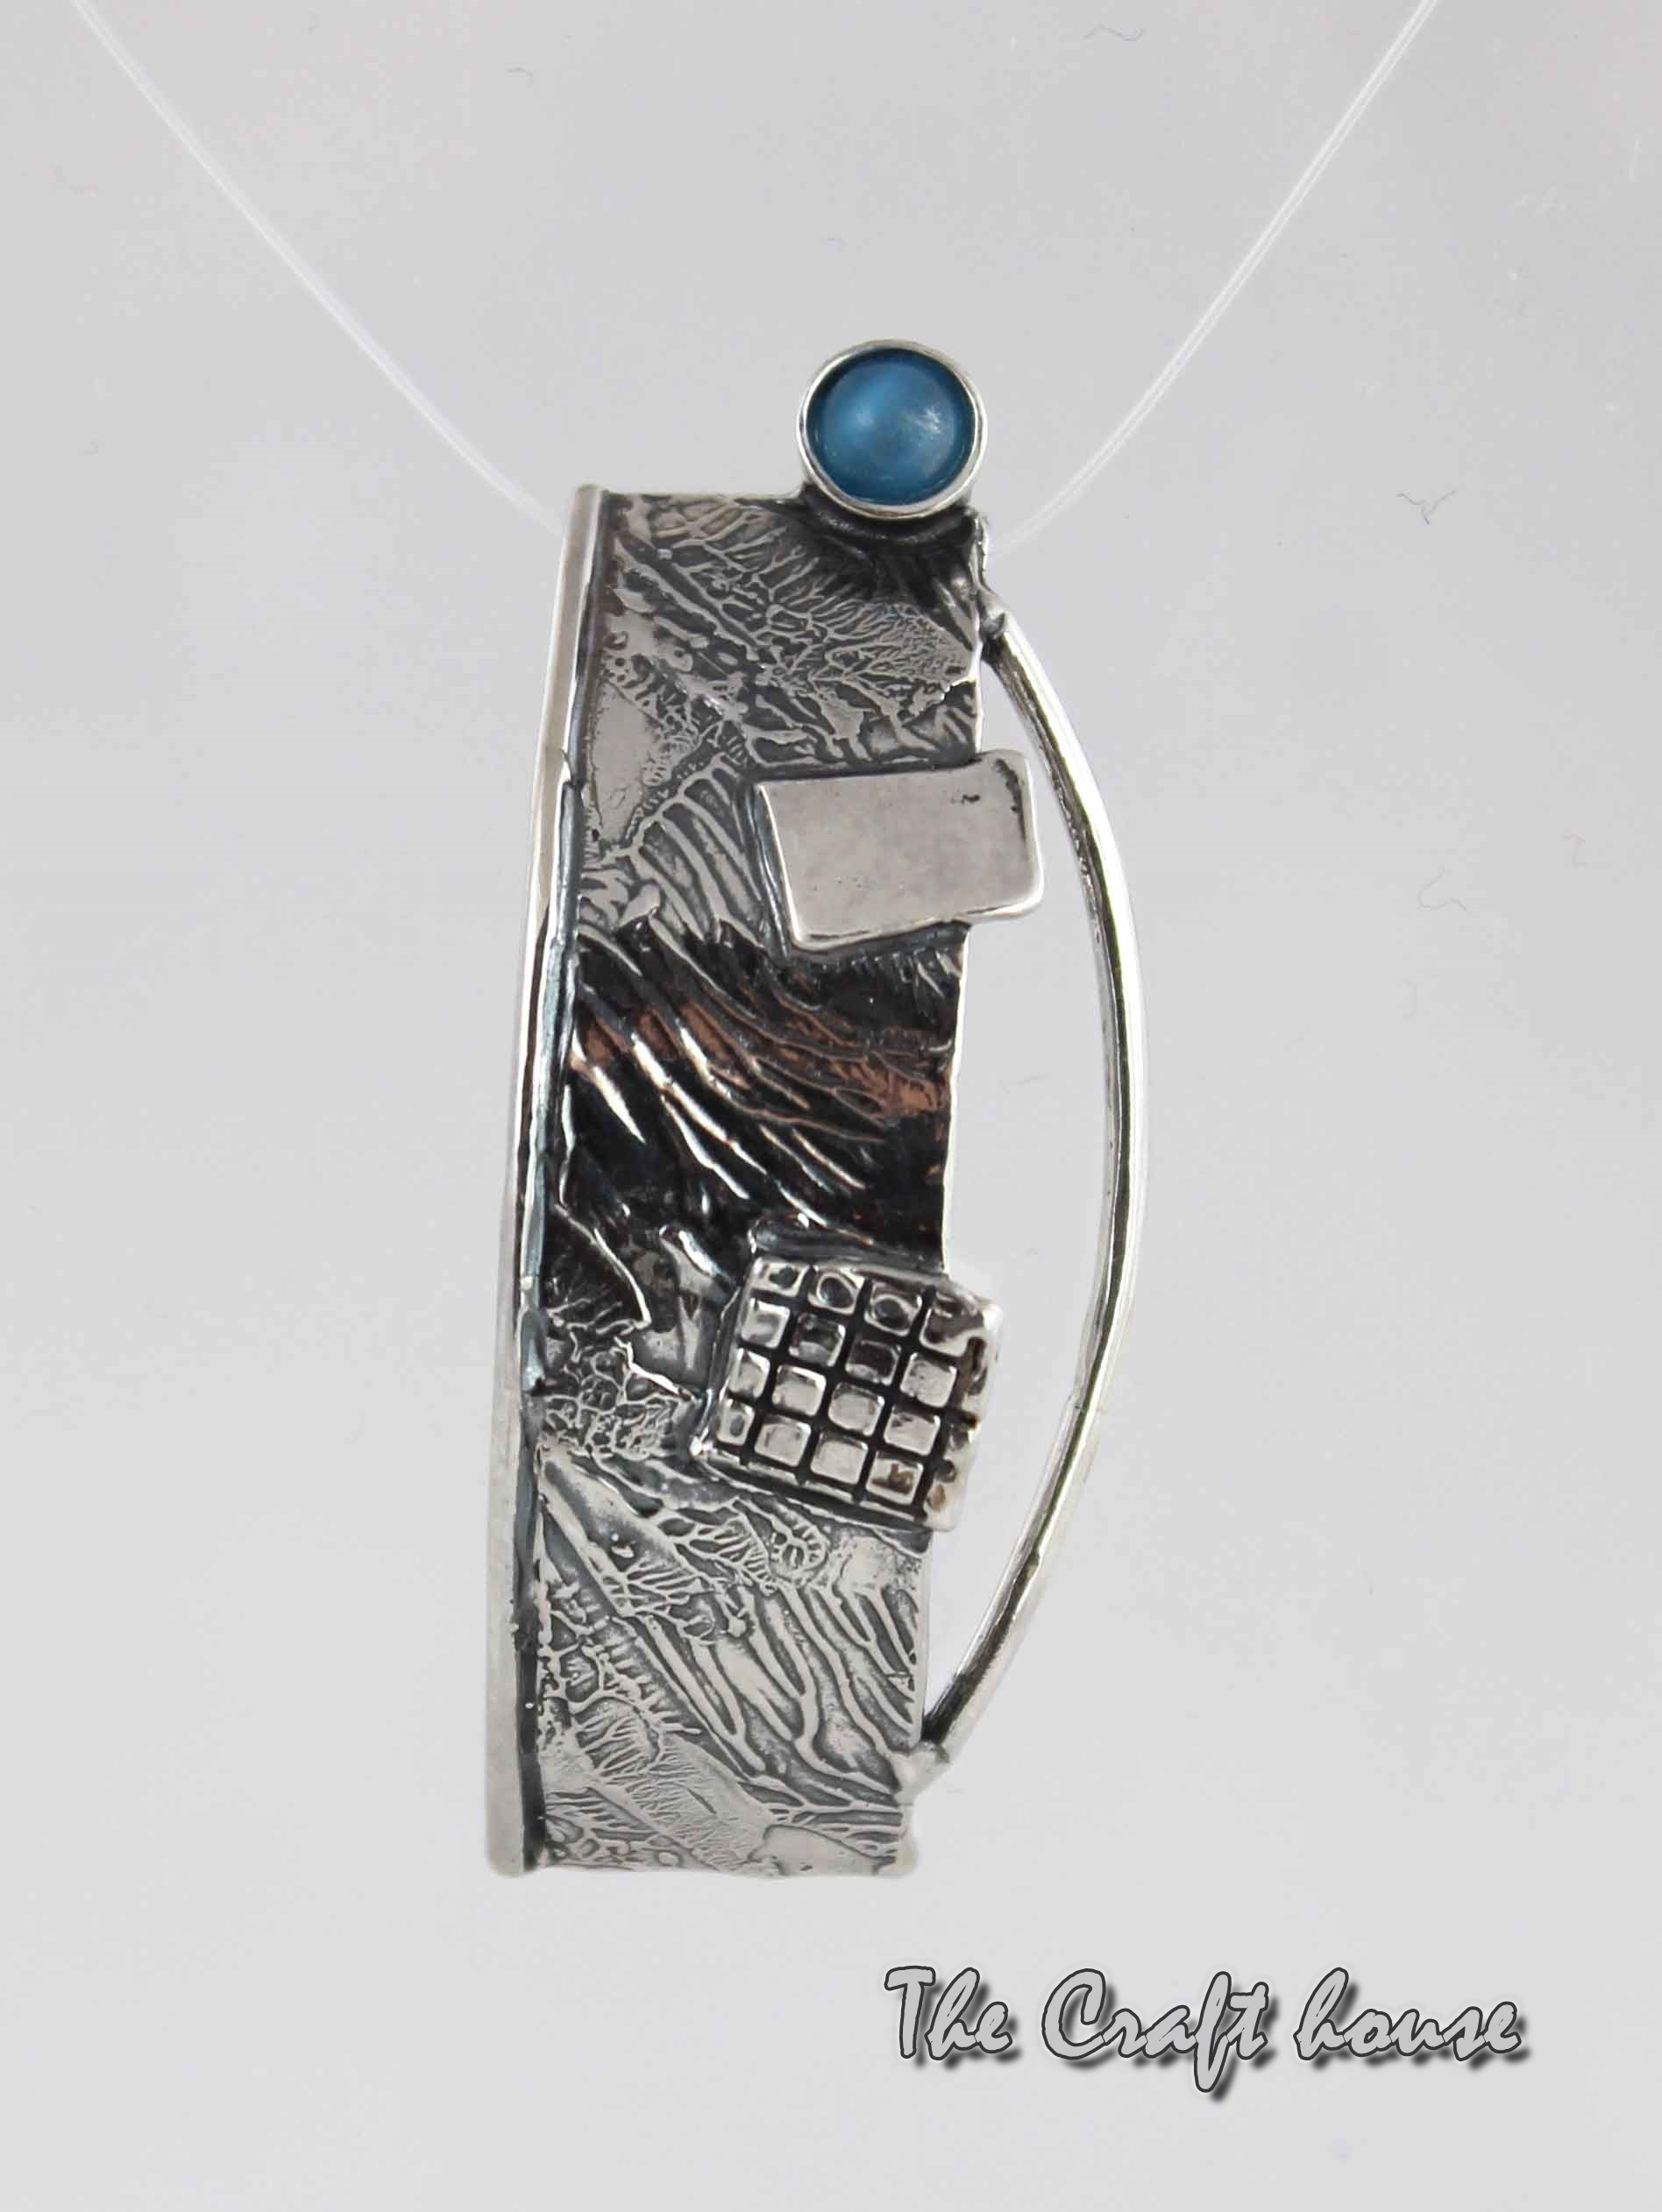 Silver pendant with Cat's eye stone